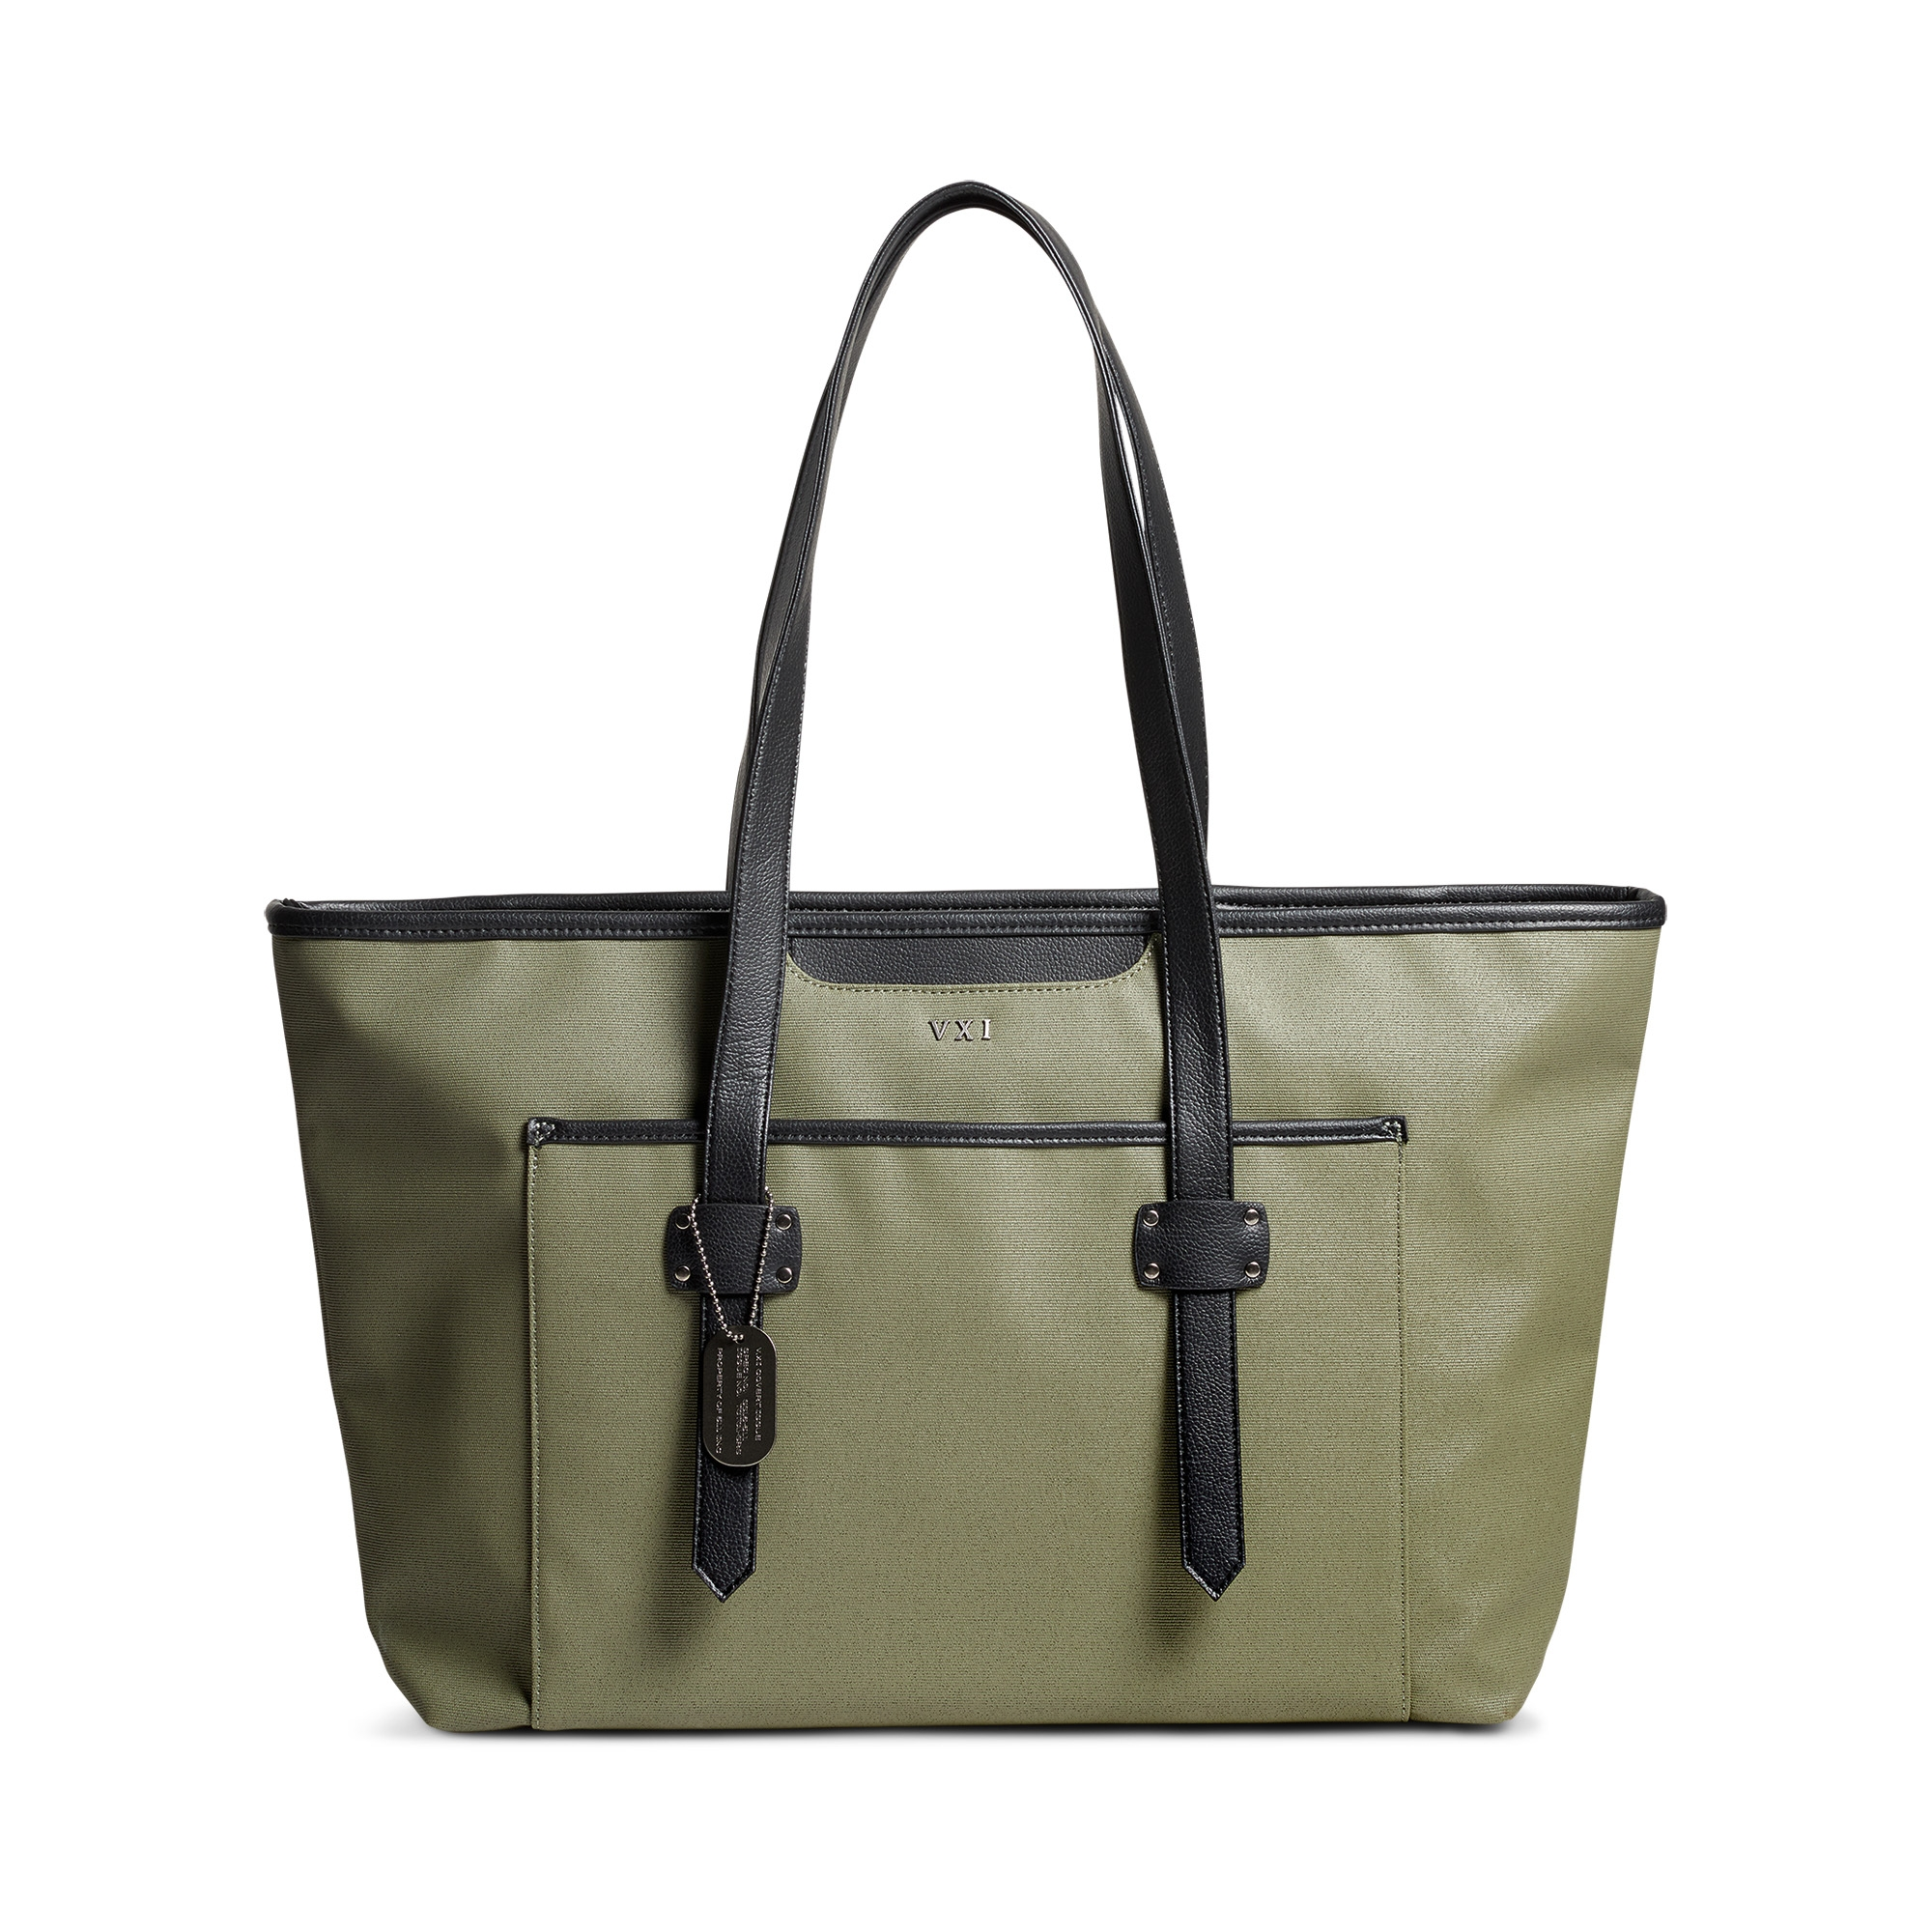 5.11 Tactical Women's Tiffany Tote (Black)